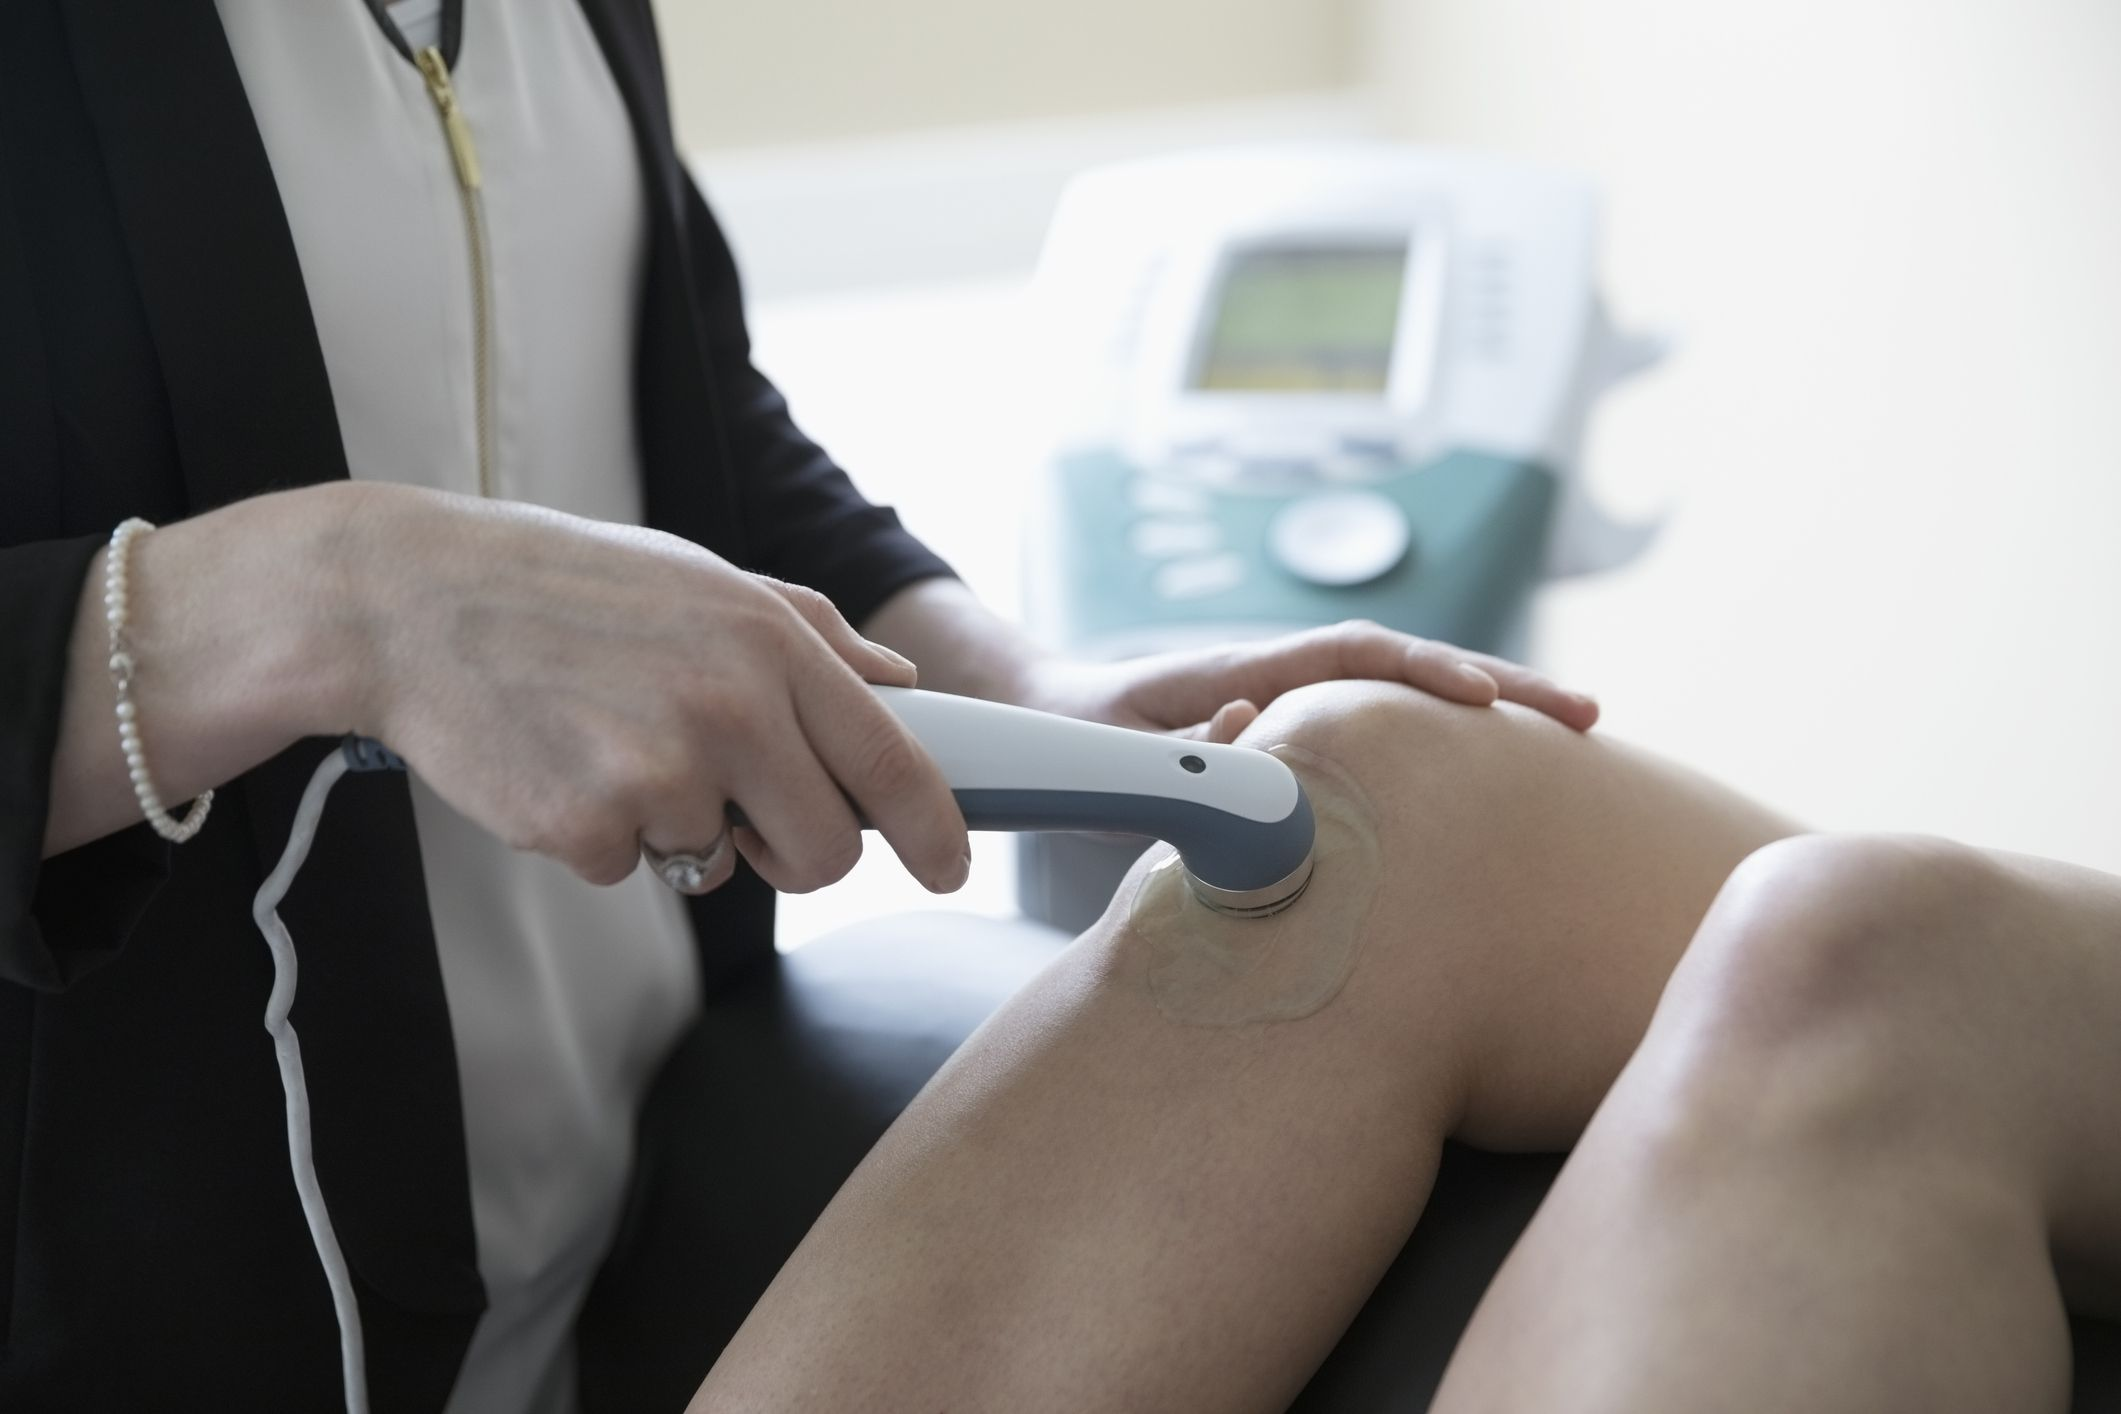 Ultrasound Therapy Treatment for Chronic Pain